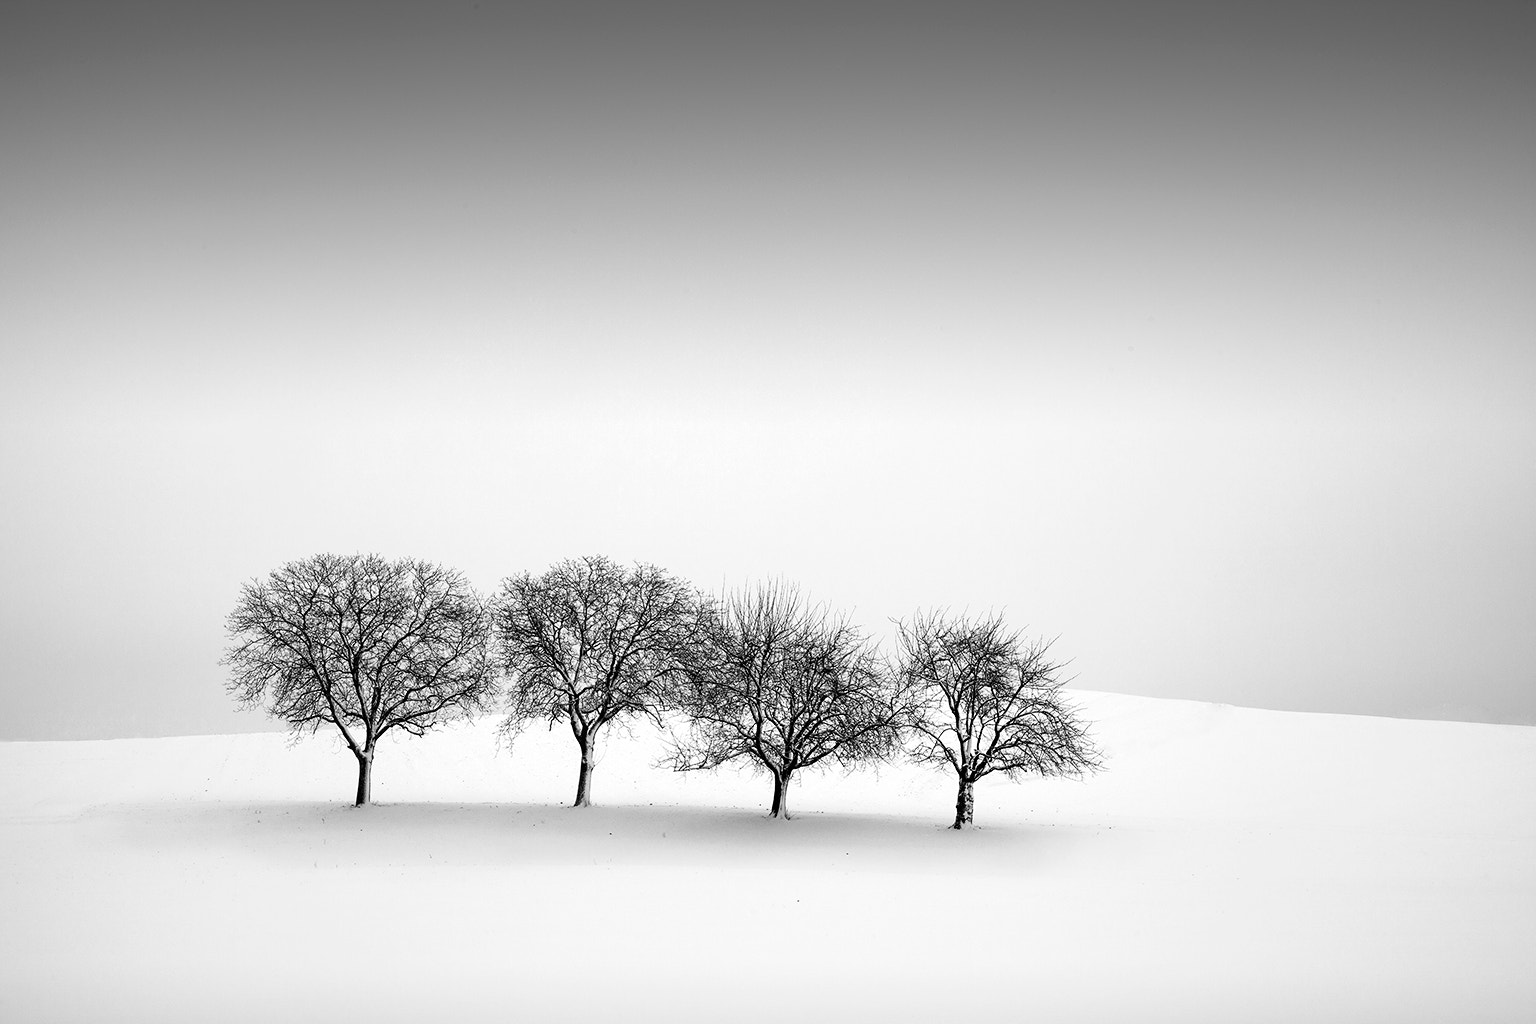 Photograph Four in a row by Dominique Dubied on 500px